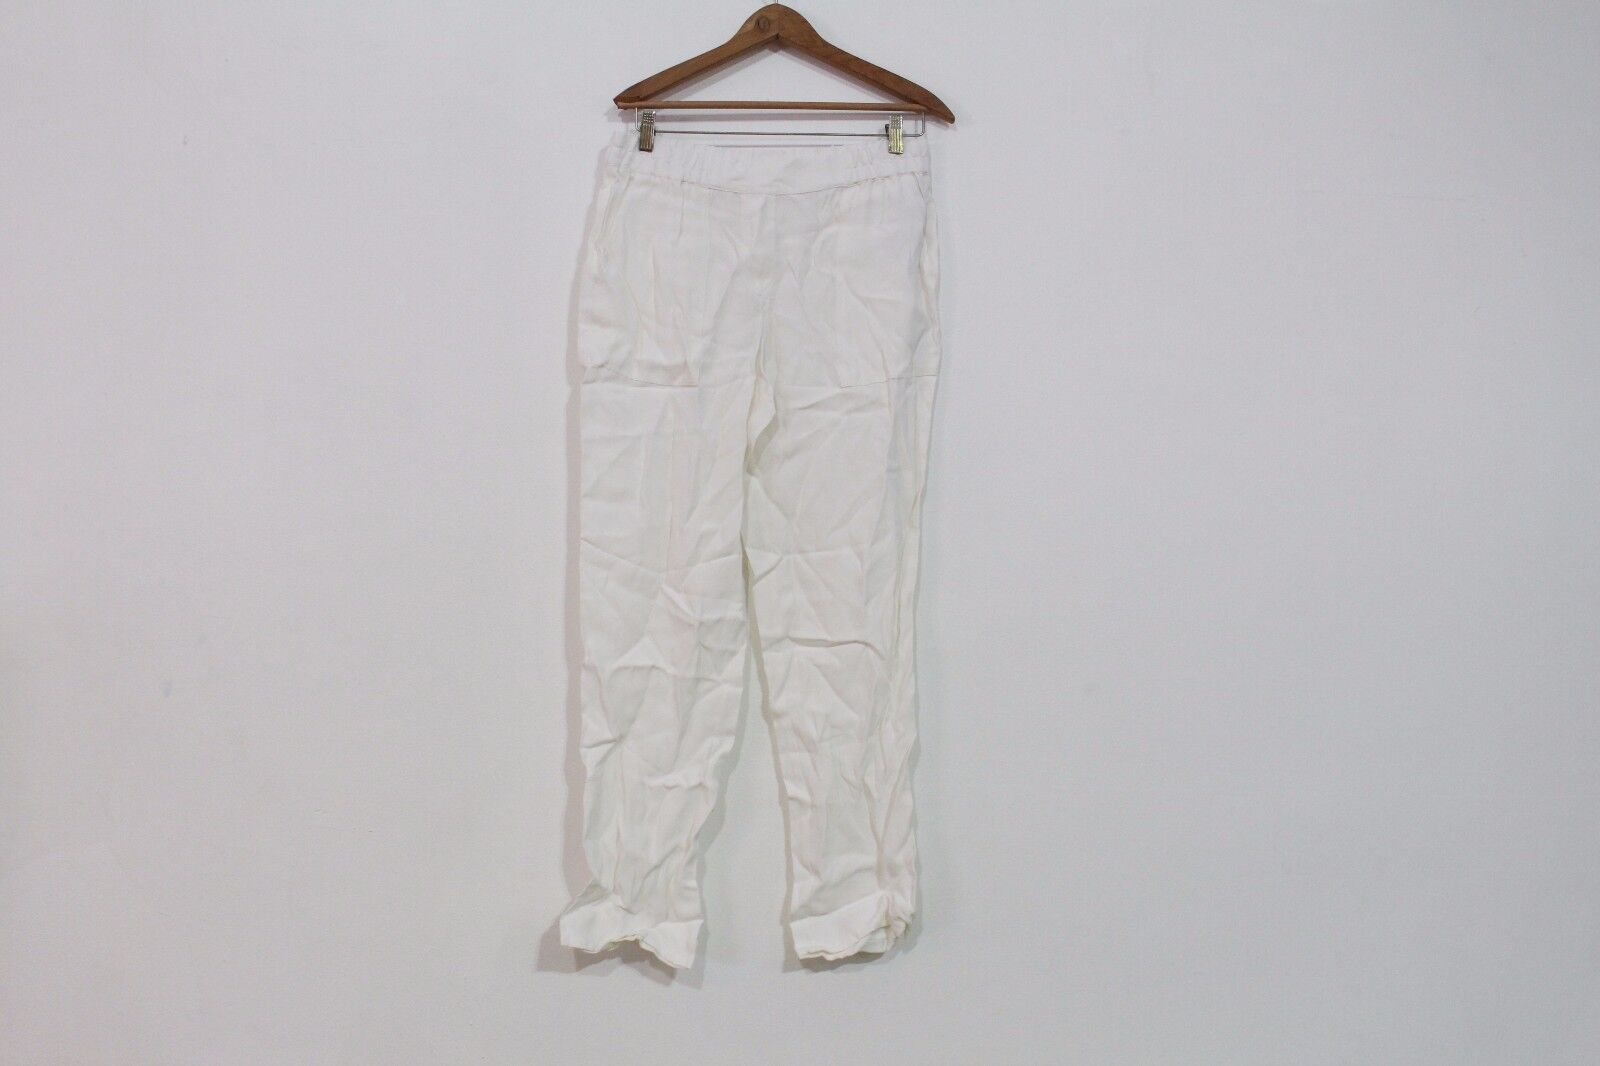 PURE DKNY WHITE CASUAL PANTS SIZE SMALL NEW